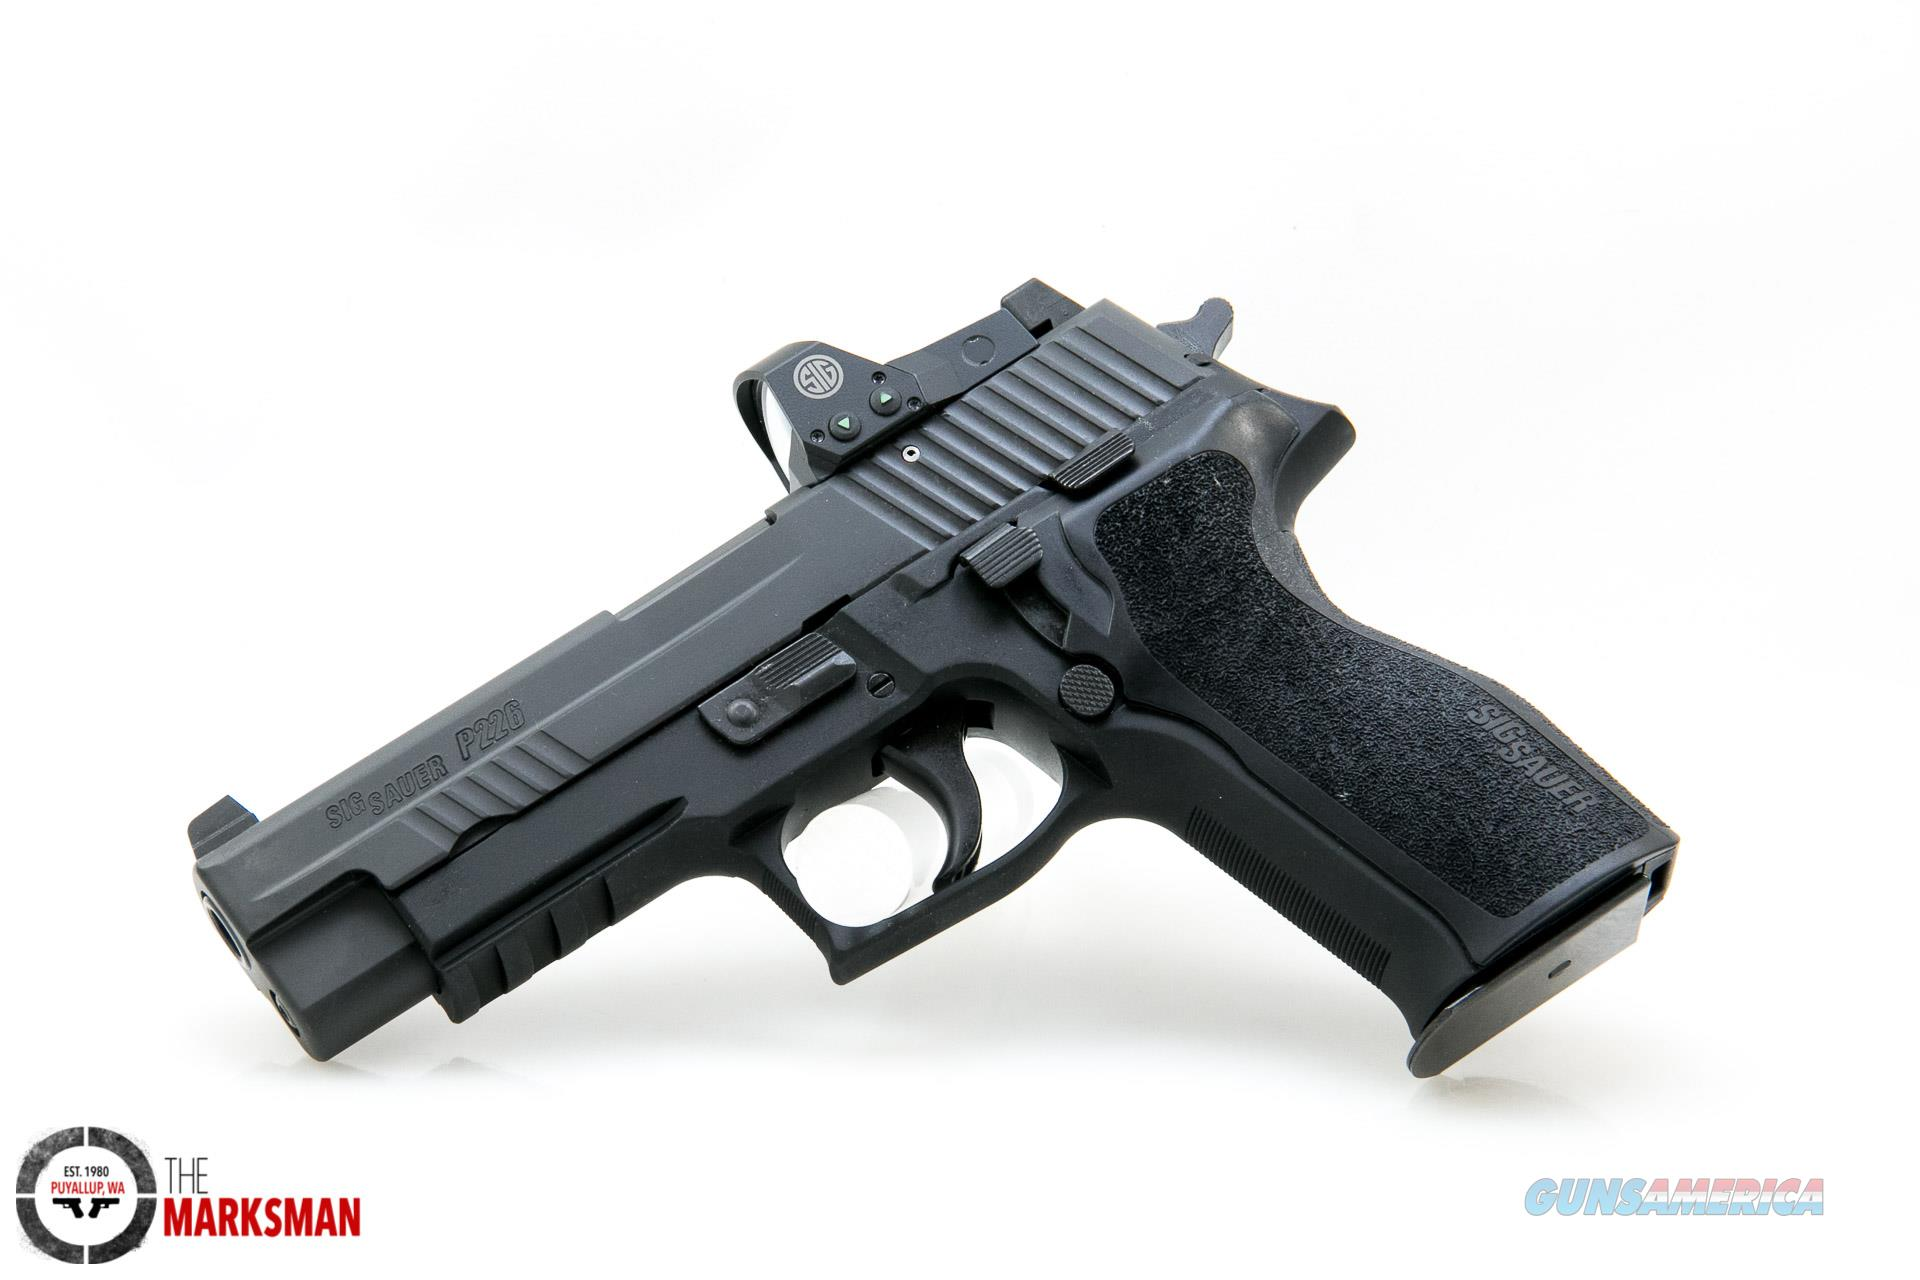 Sig Sauer P226 RX, 9mm NEW ROMEO1 Red Dot Sight  Guns > Pistols > Sig - Sauer/Sigarms Pistols > P226